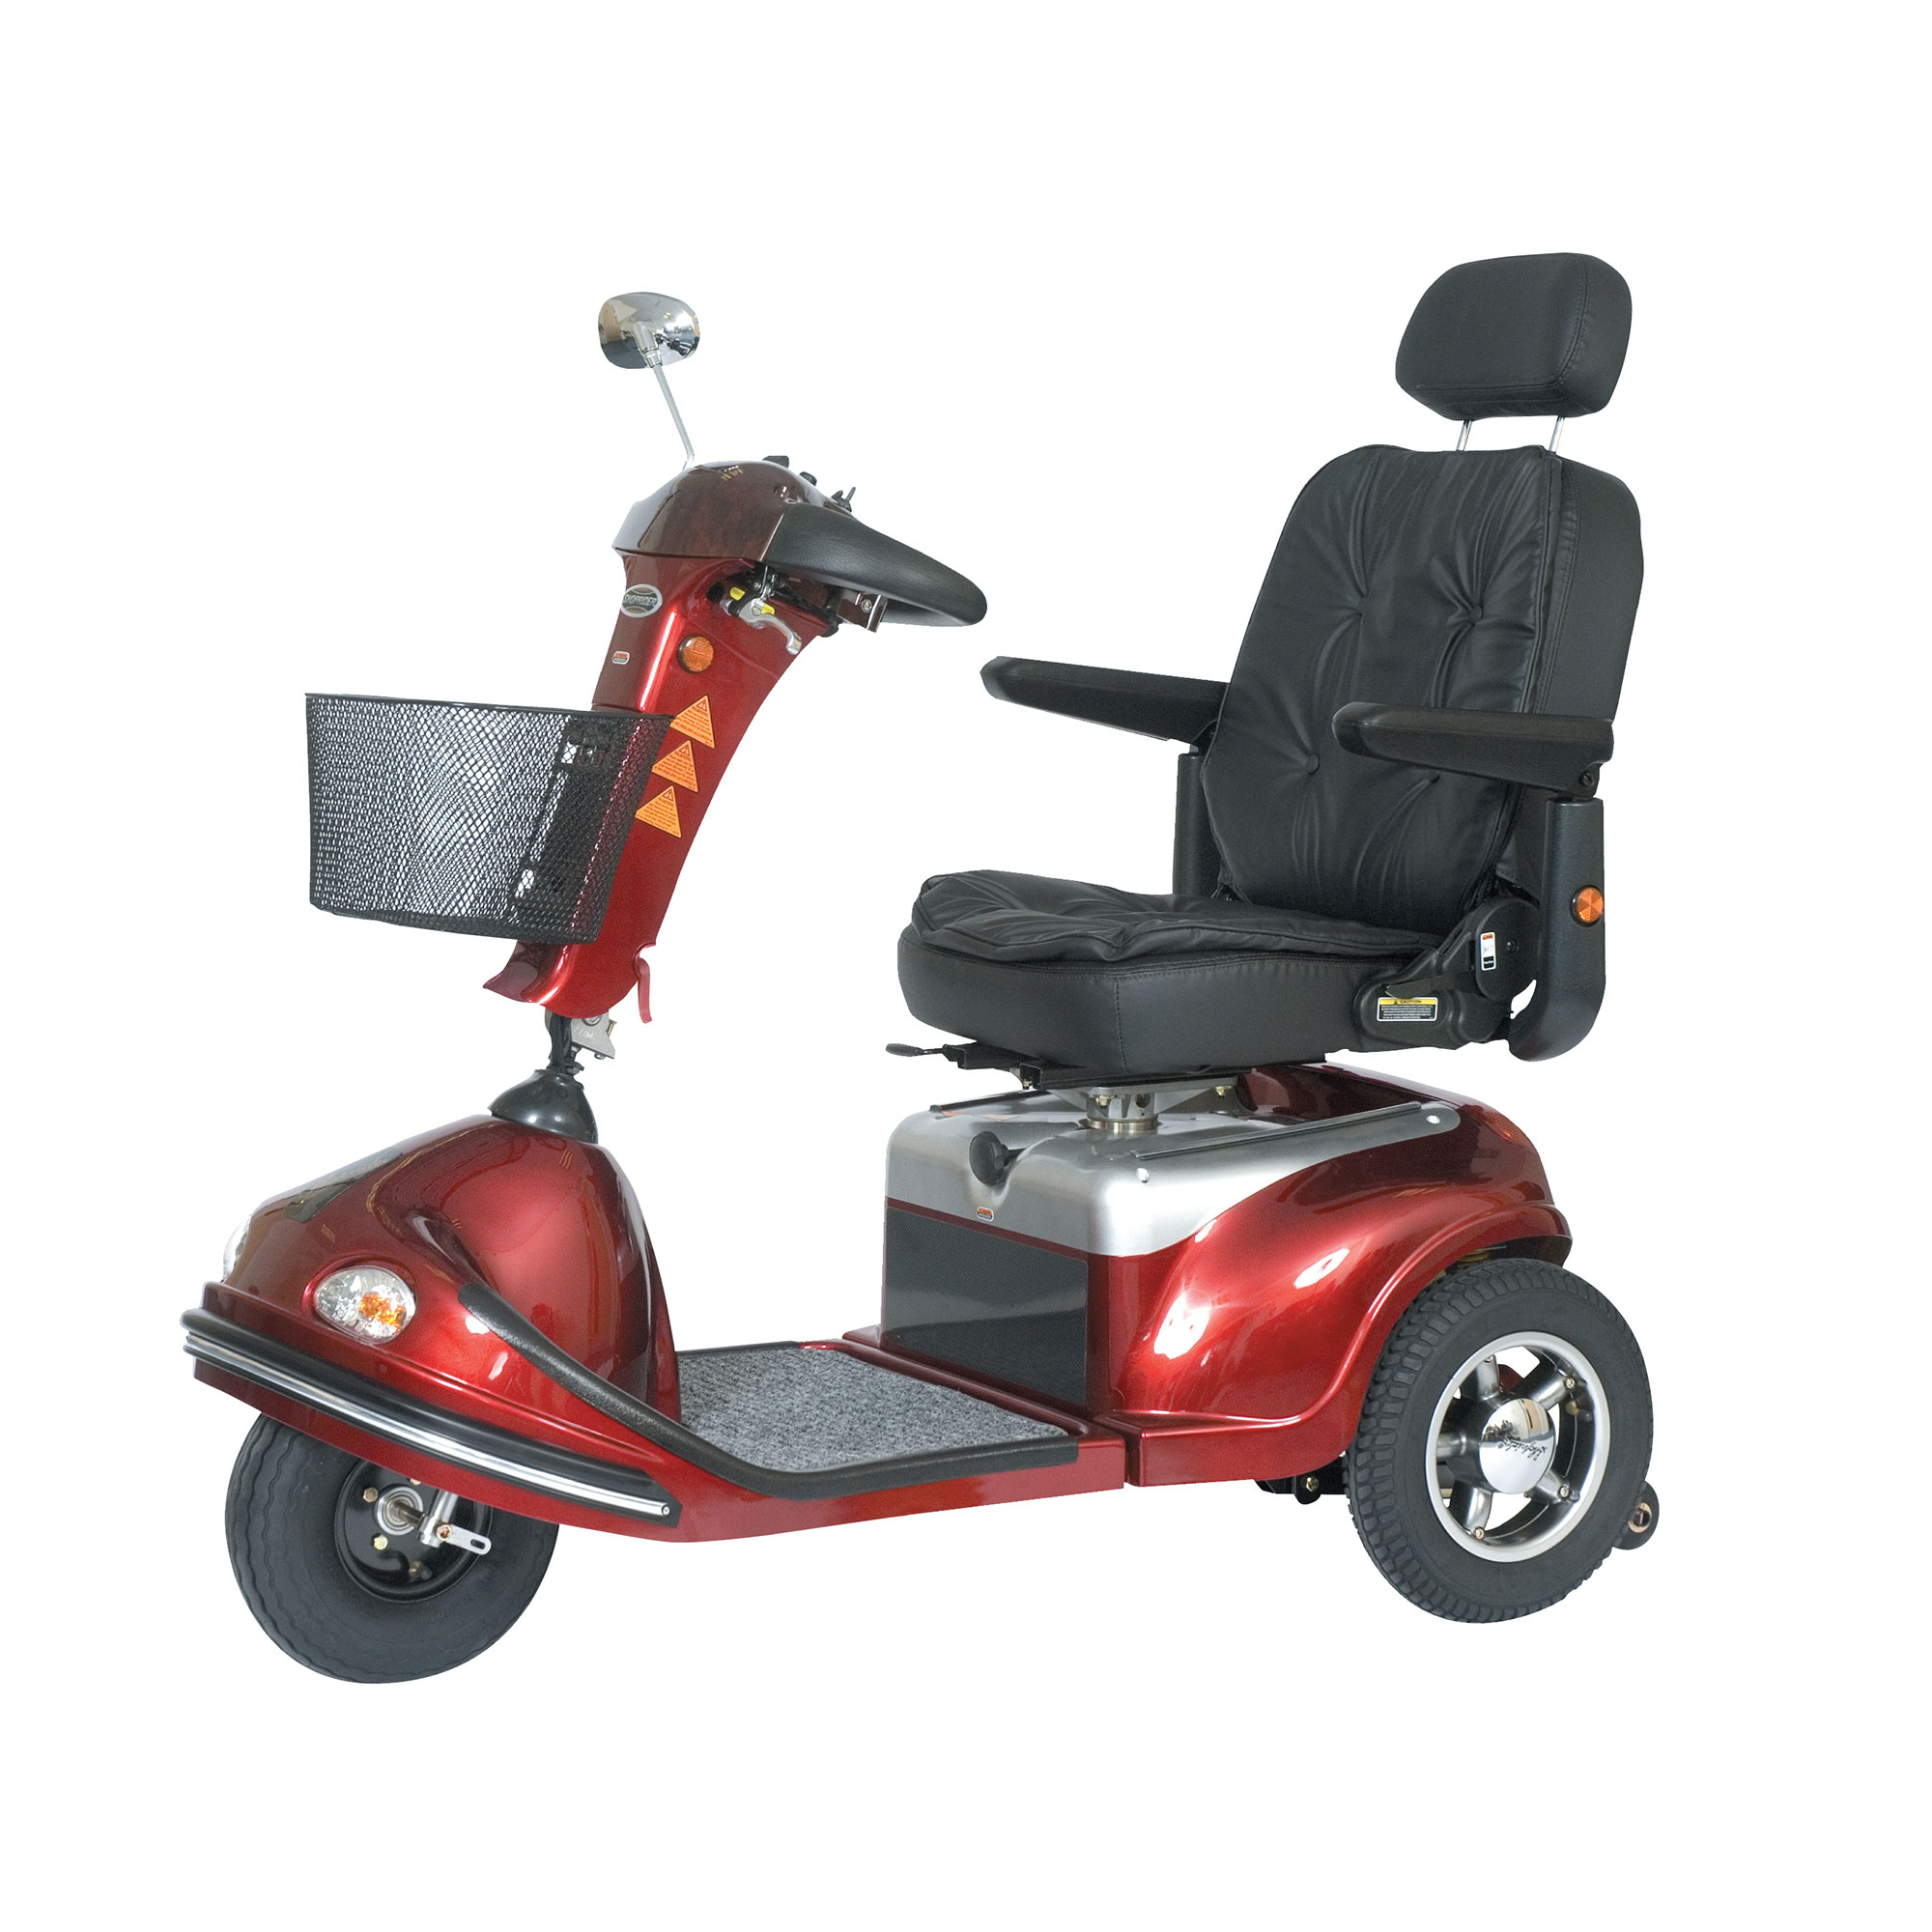 shoprider torino roma medical rh romamedical co uk Mobility Scooter Review Pride Mobility Scooter Used Sale